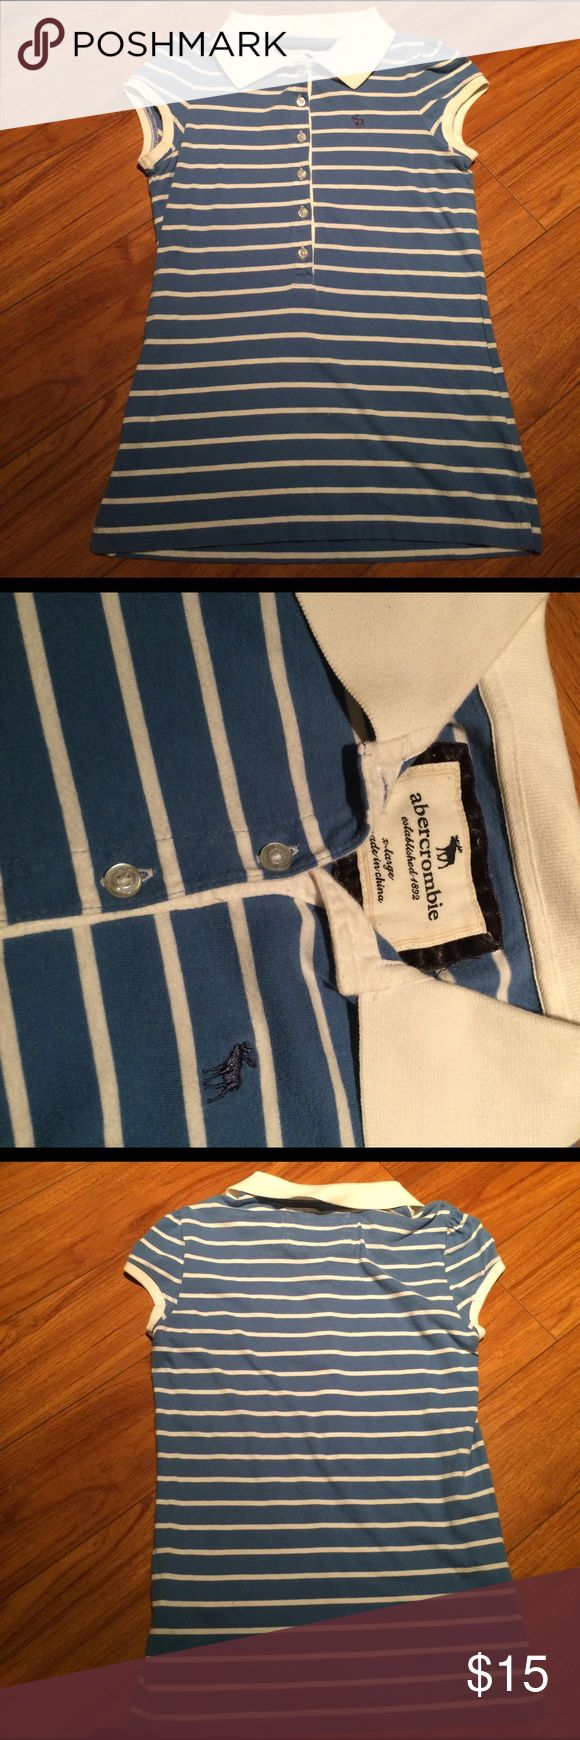 A blue and white striped polo shirt A blue and white striped polo shirt with white trimming and have worn a couple of times. Says X-large but would say it will fit a small or medium better. Open to offers Abercrombie & Fitch Tops